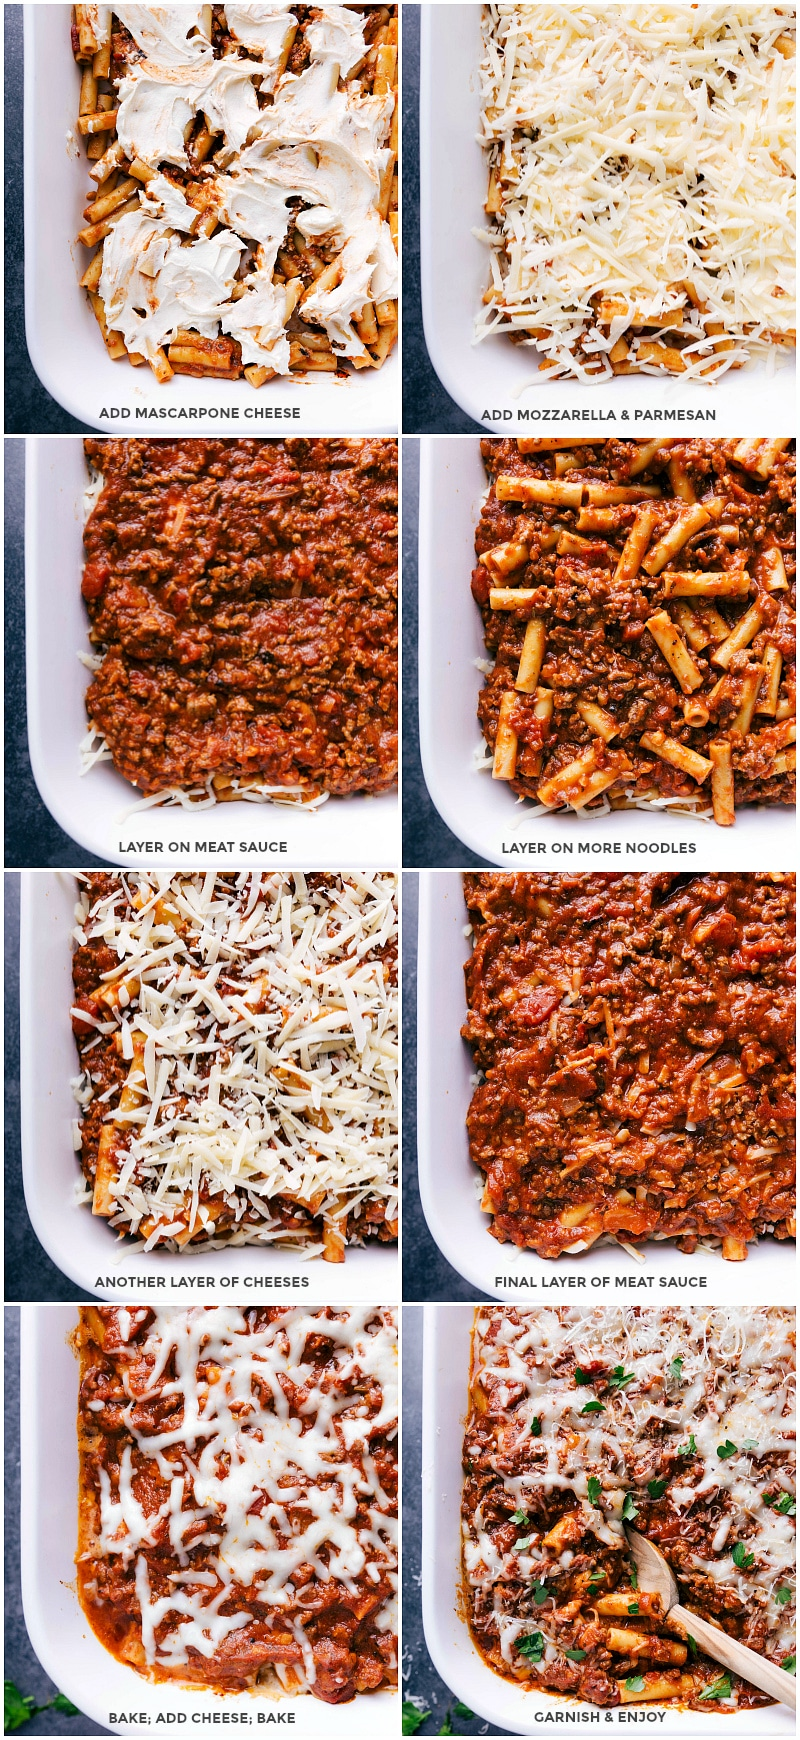 Process shots: add mascarpone to the first layer of pasta; top with mozzarella and Parmesan cheese; layer on two more layers of meat sauce and cheeses; cover and bake, add more cheese and garnish.